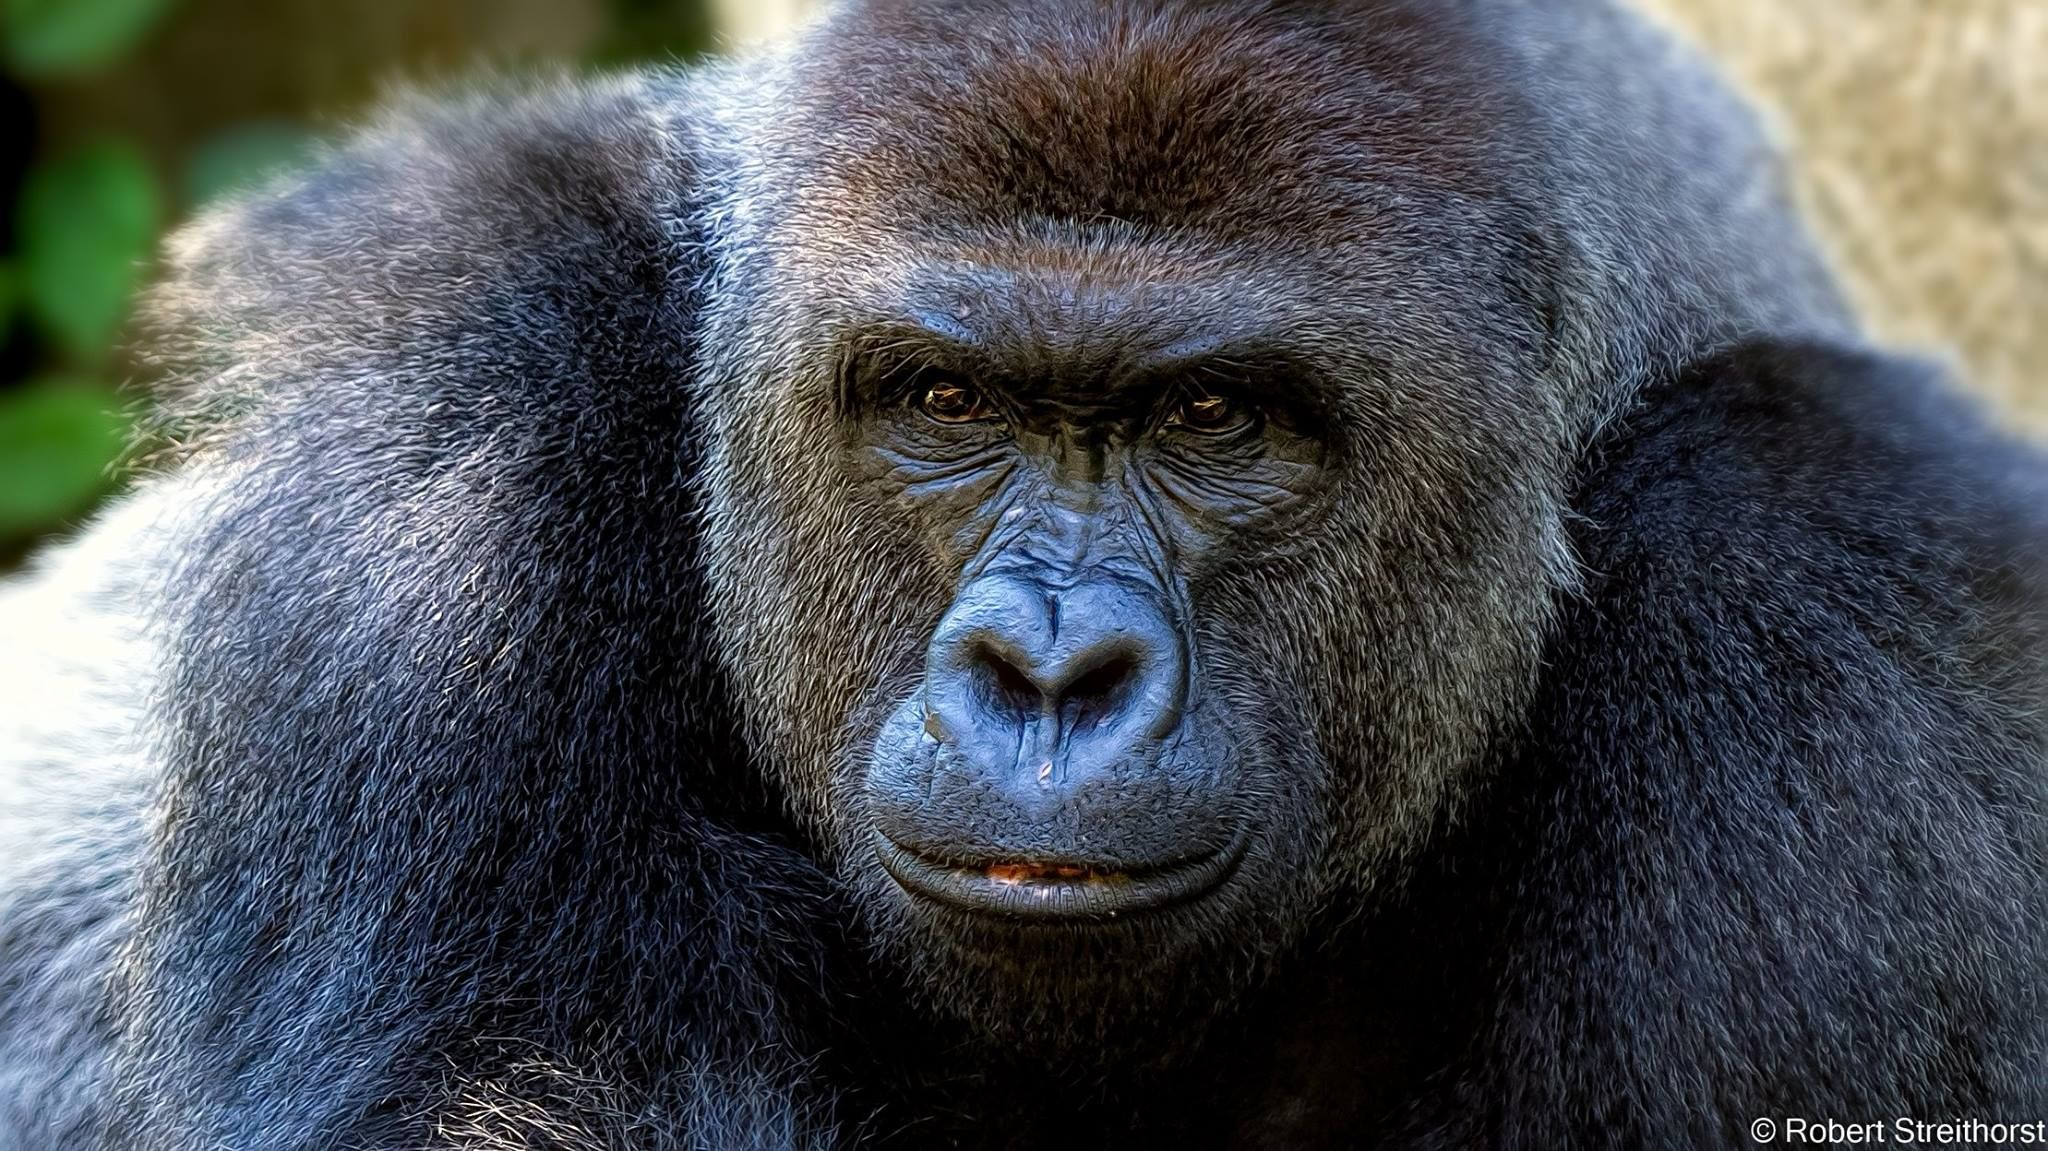 Harambe | MONKEYS~~ GORILLAS~~ | Pinterest